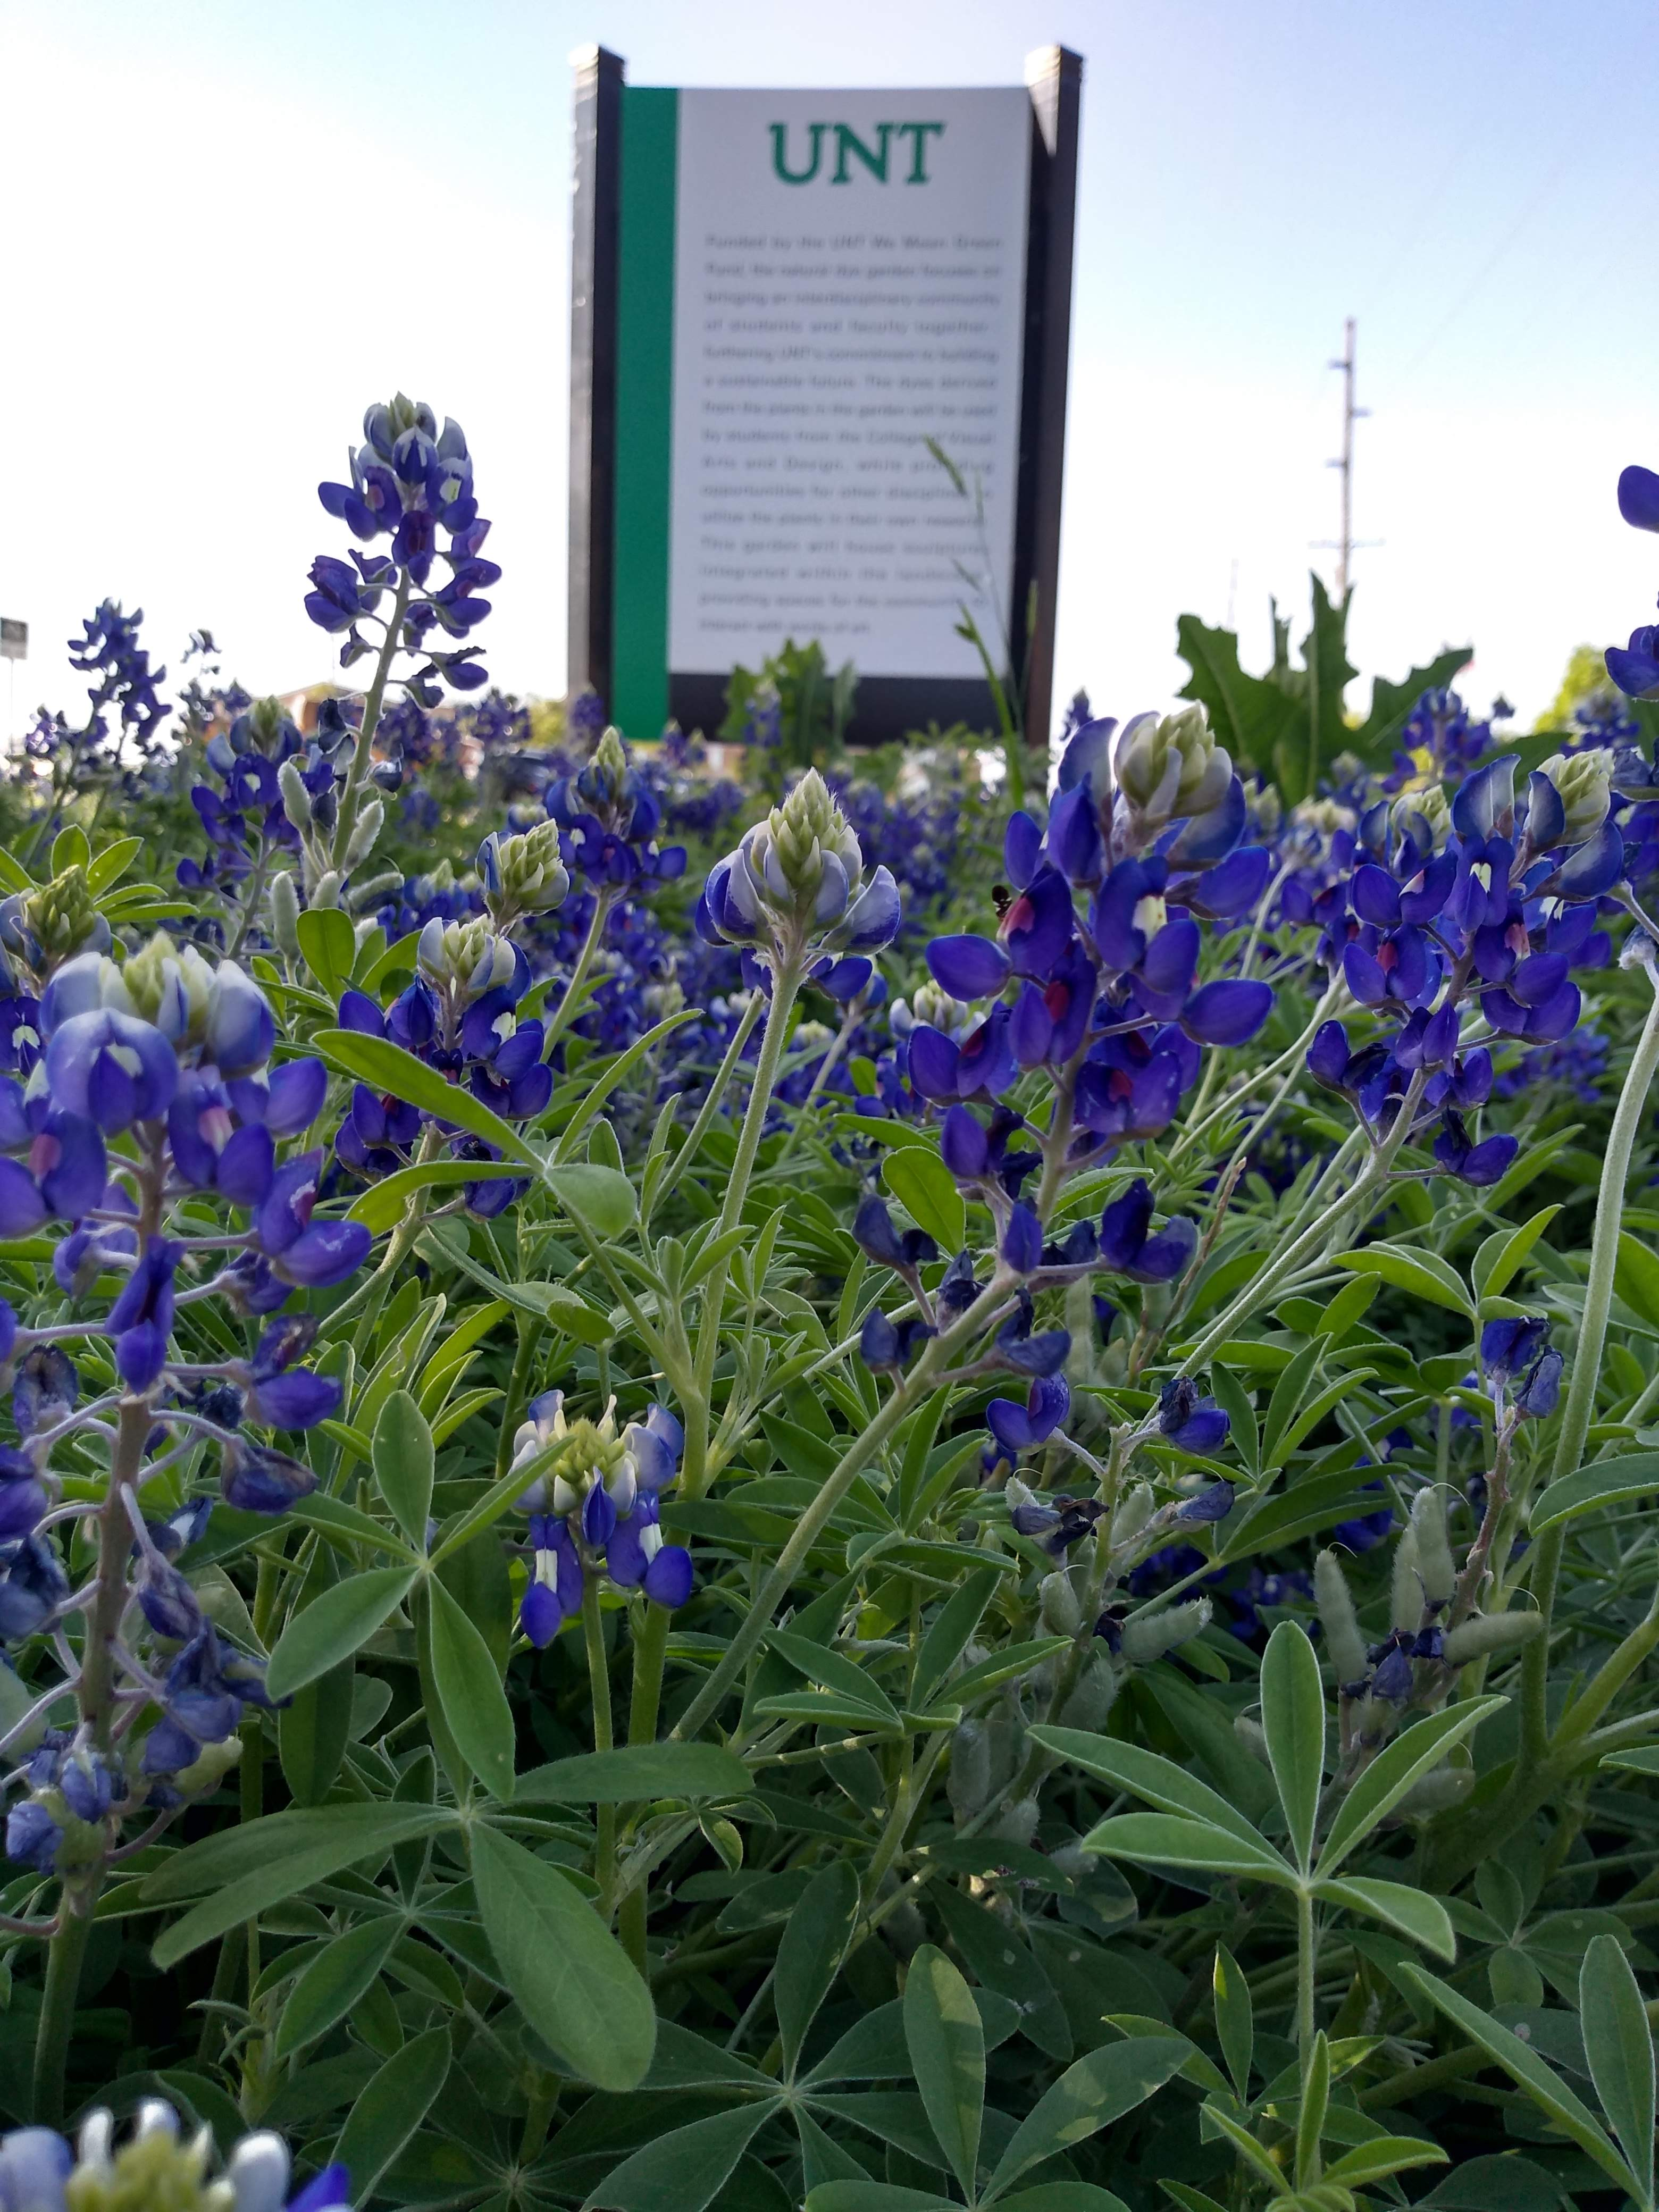 The Natural Dye Garden sign surrounded by bluebonnets